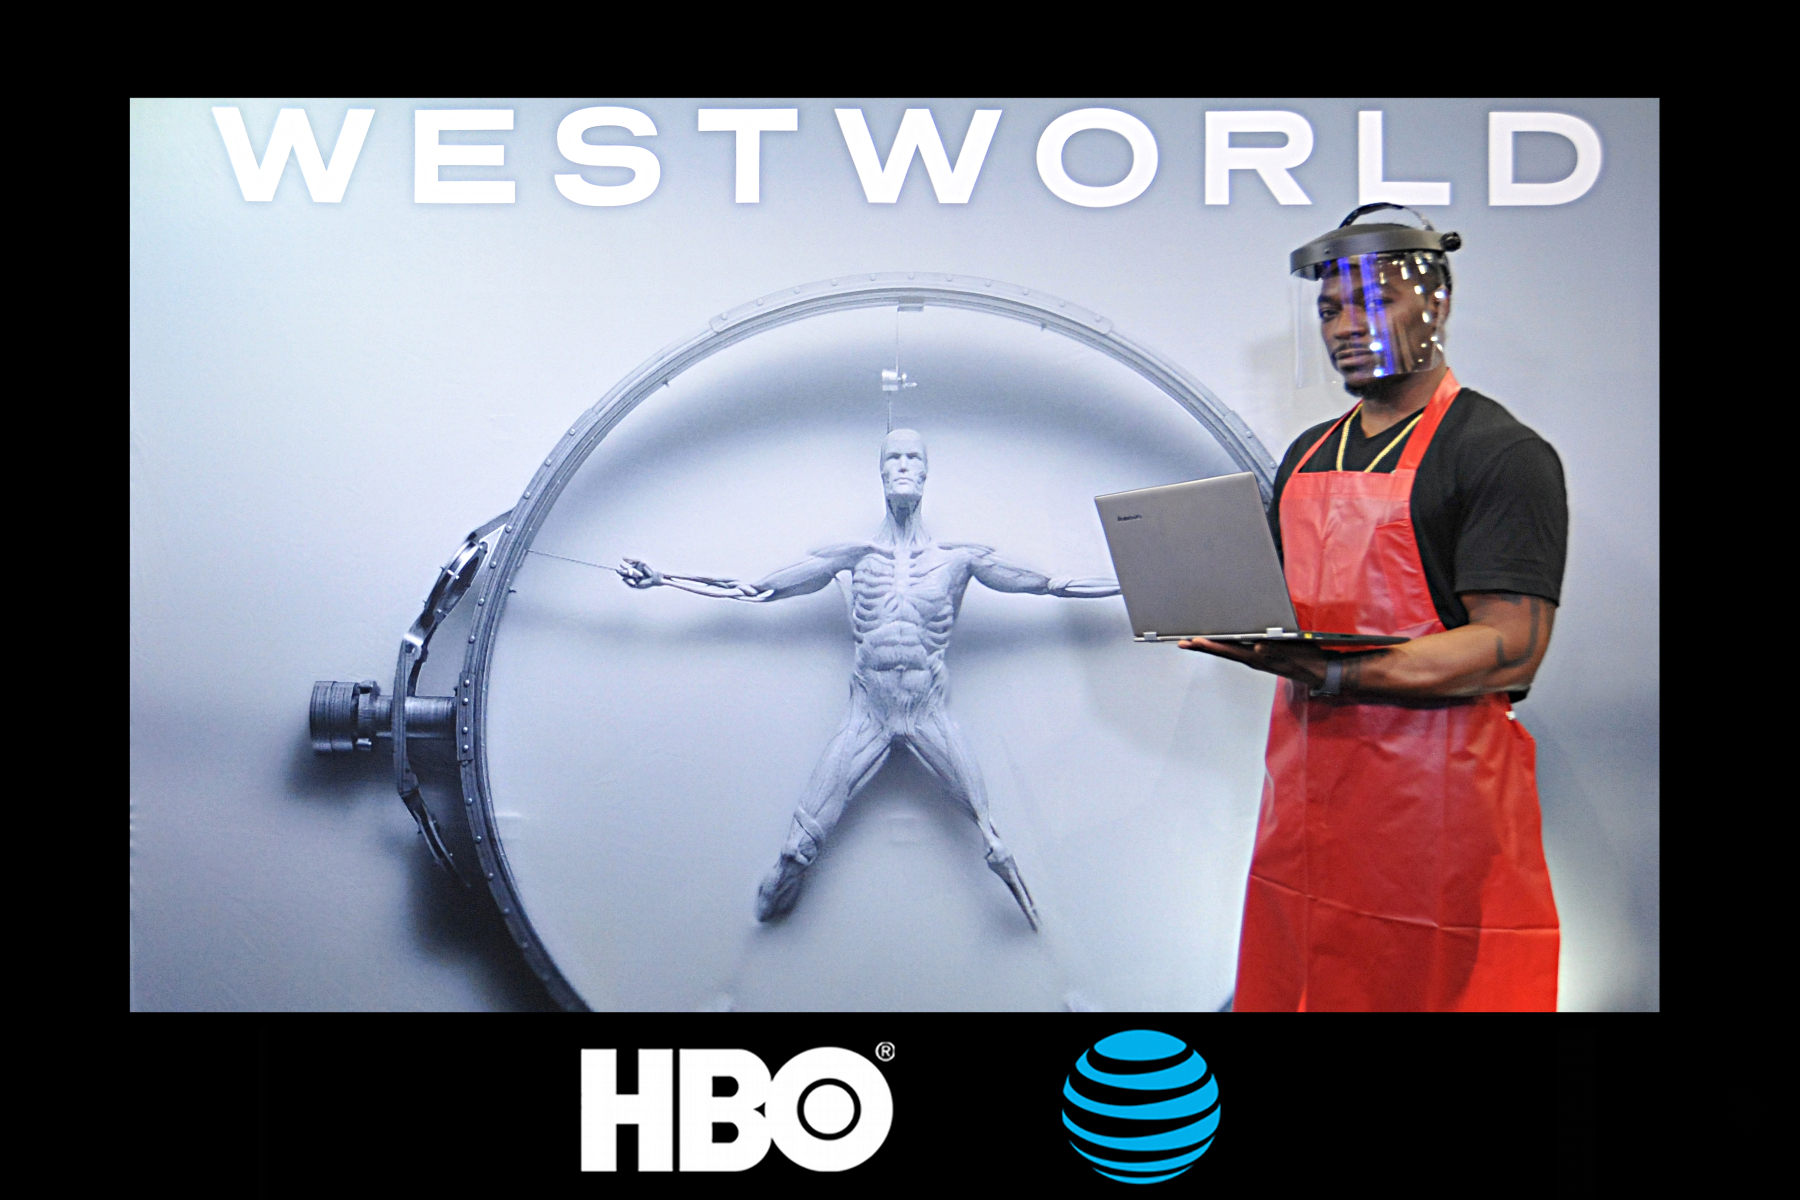 A participant poses as one of the technicians from HBO's Westworld in this Las Vegas Experiential Photo Marketing booth